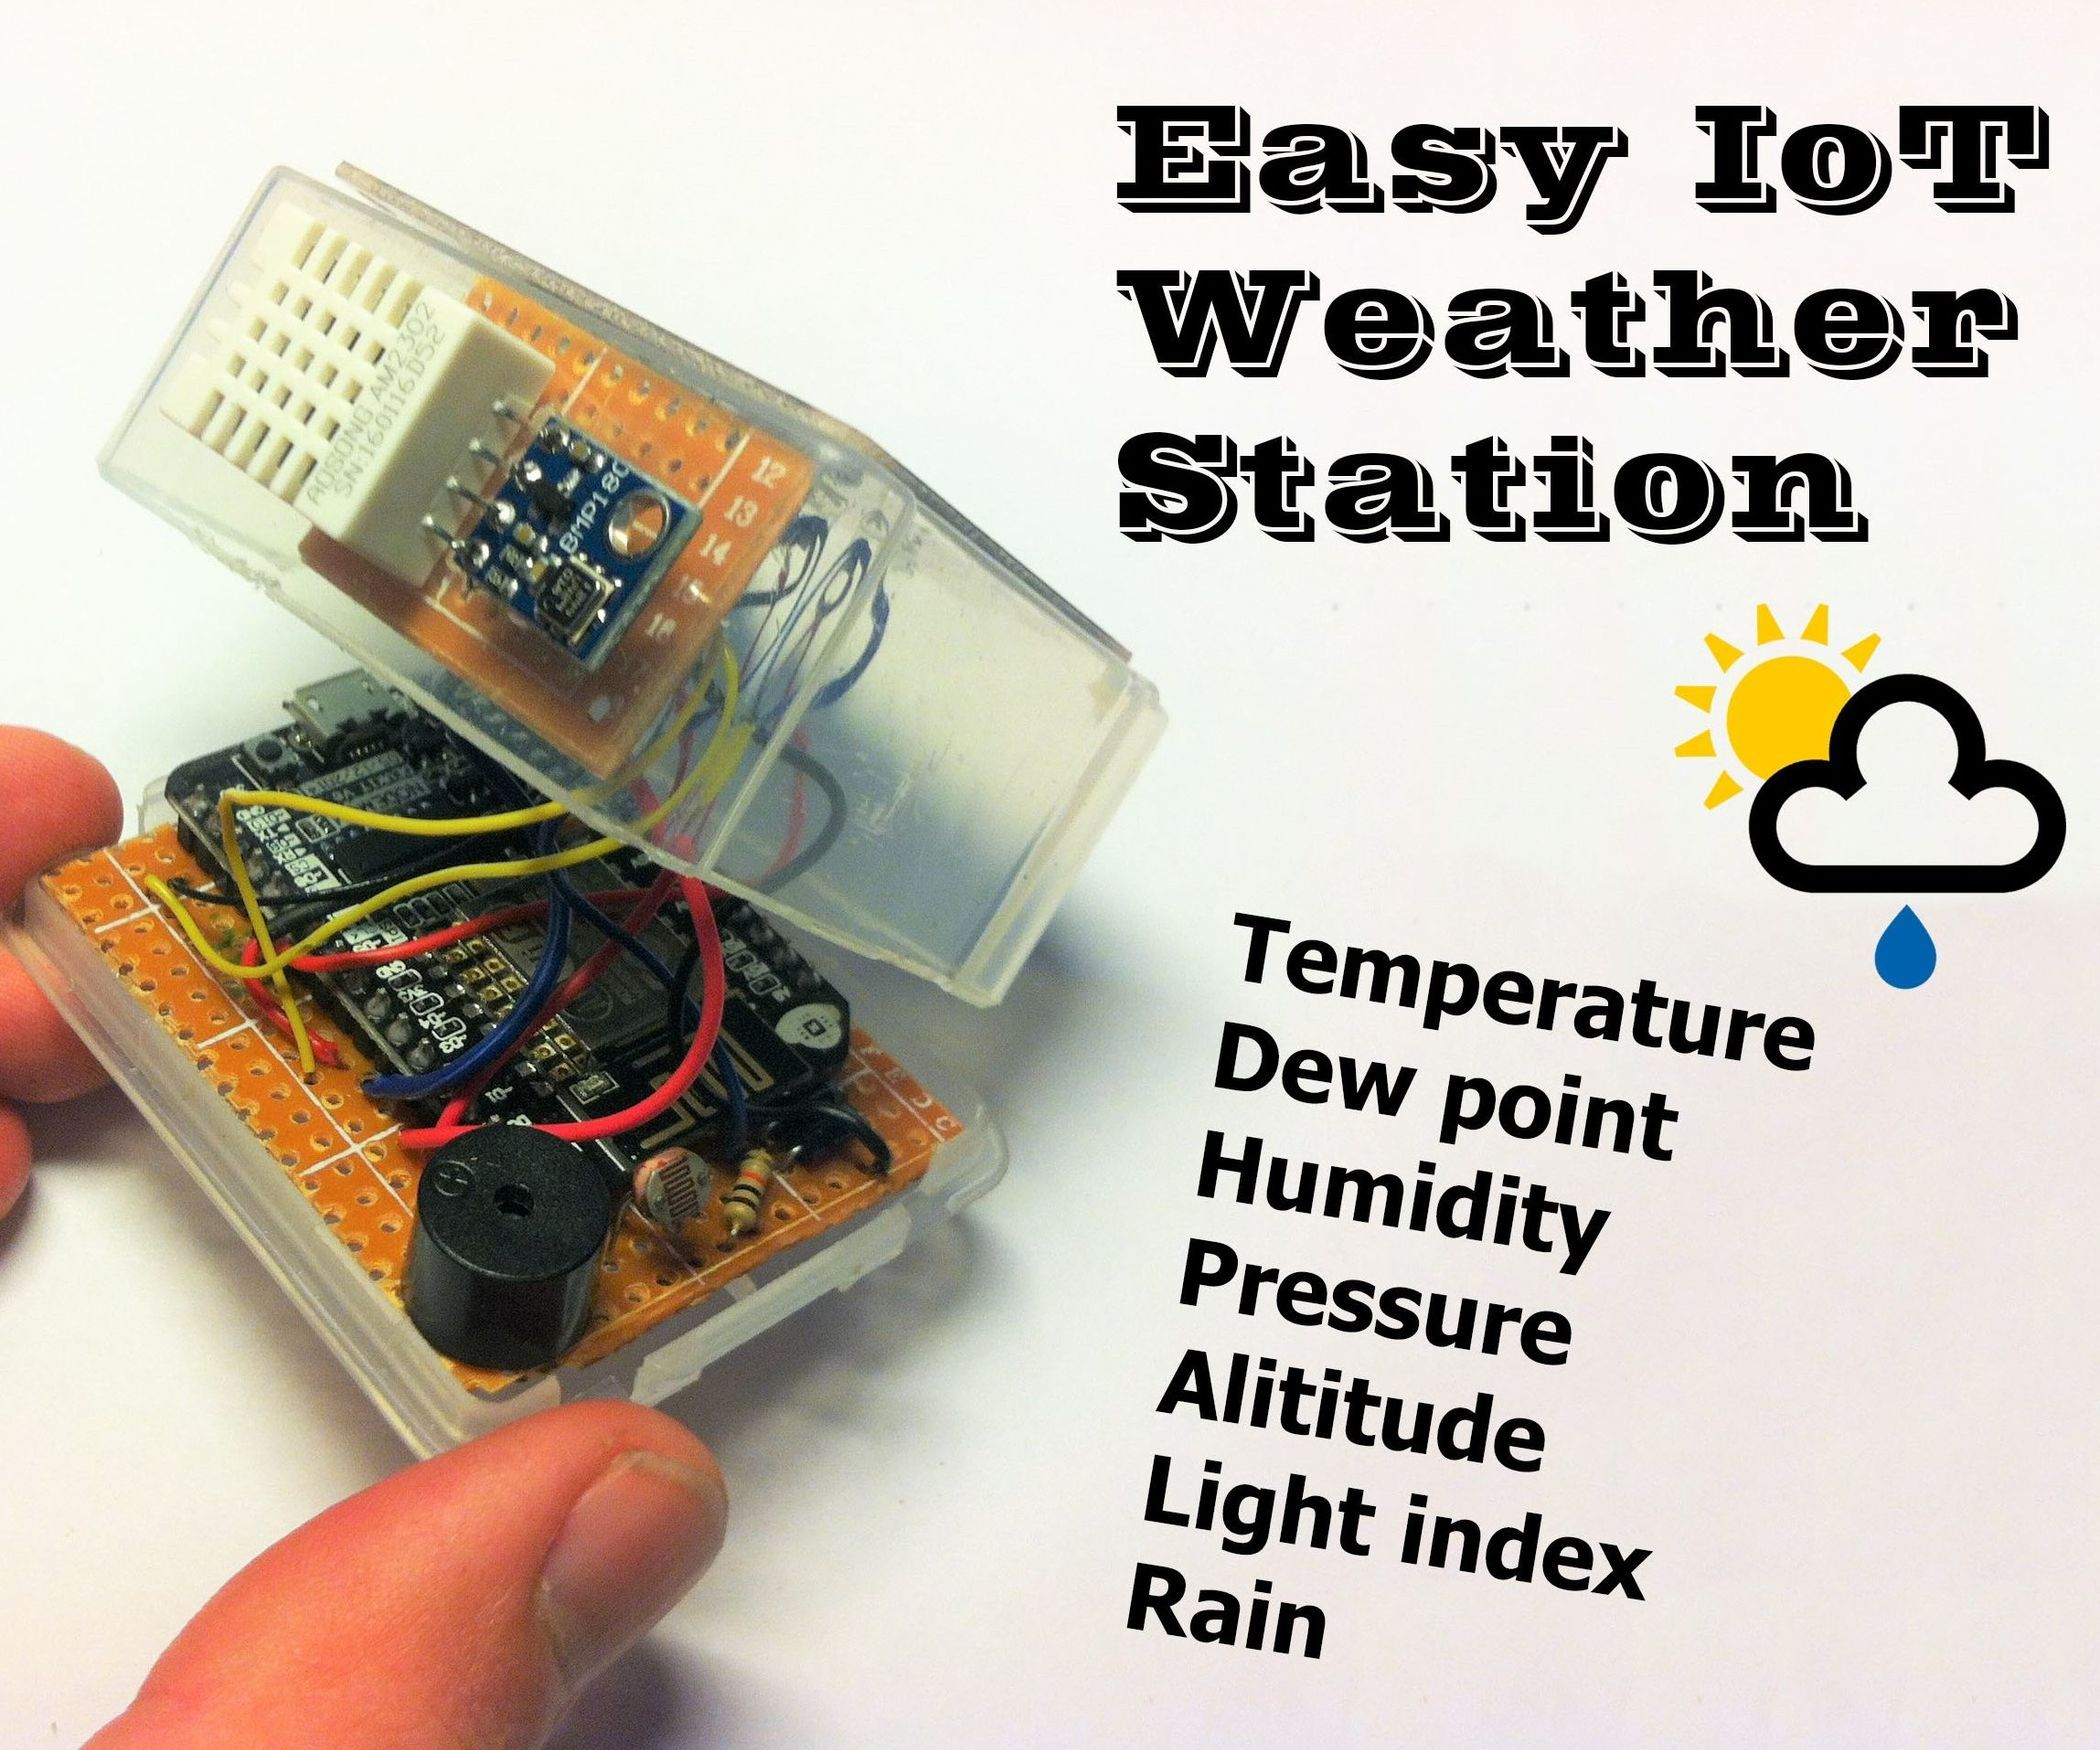 Easy IoT Weather Station With Multiple Sensors | Robot/circuits